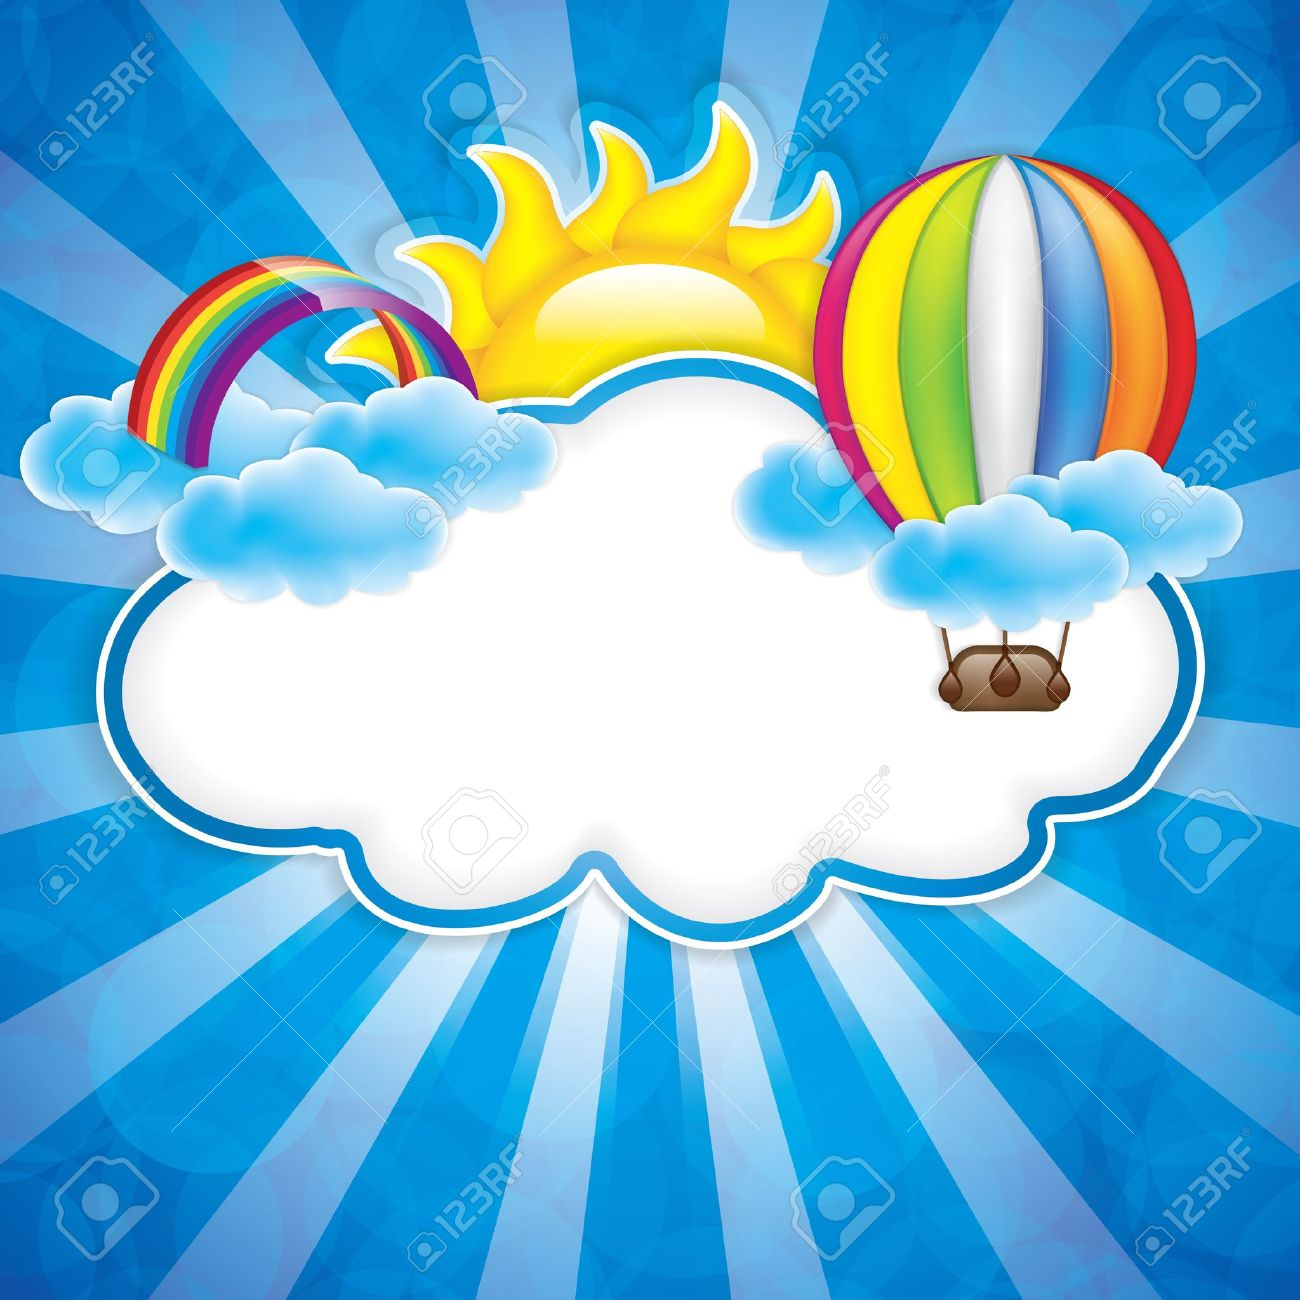 Spring Frame With Hot Air Balloon And Rainbow Royalty Free Cliparts